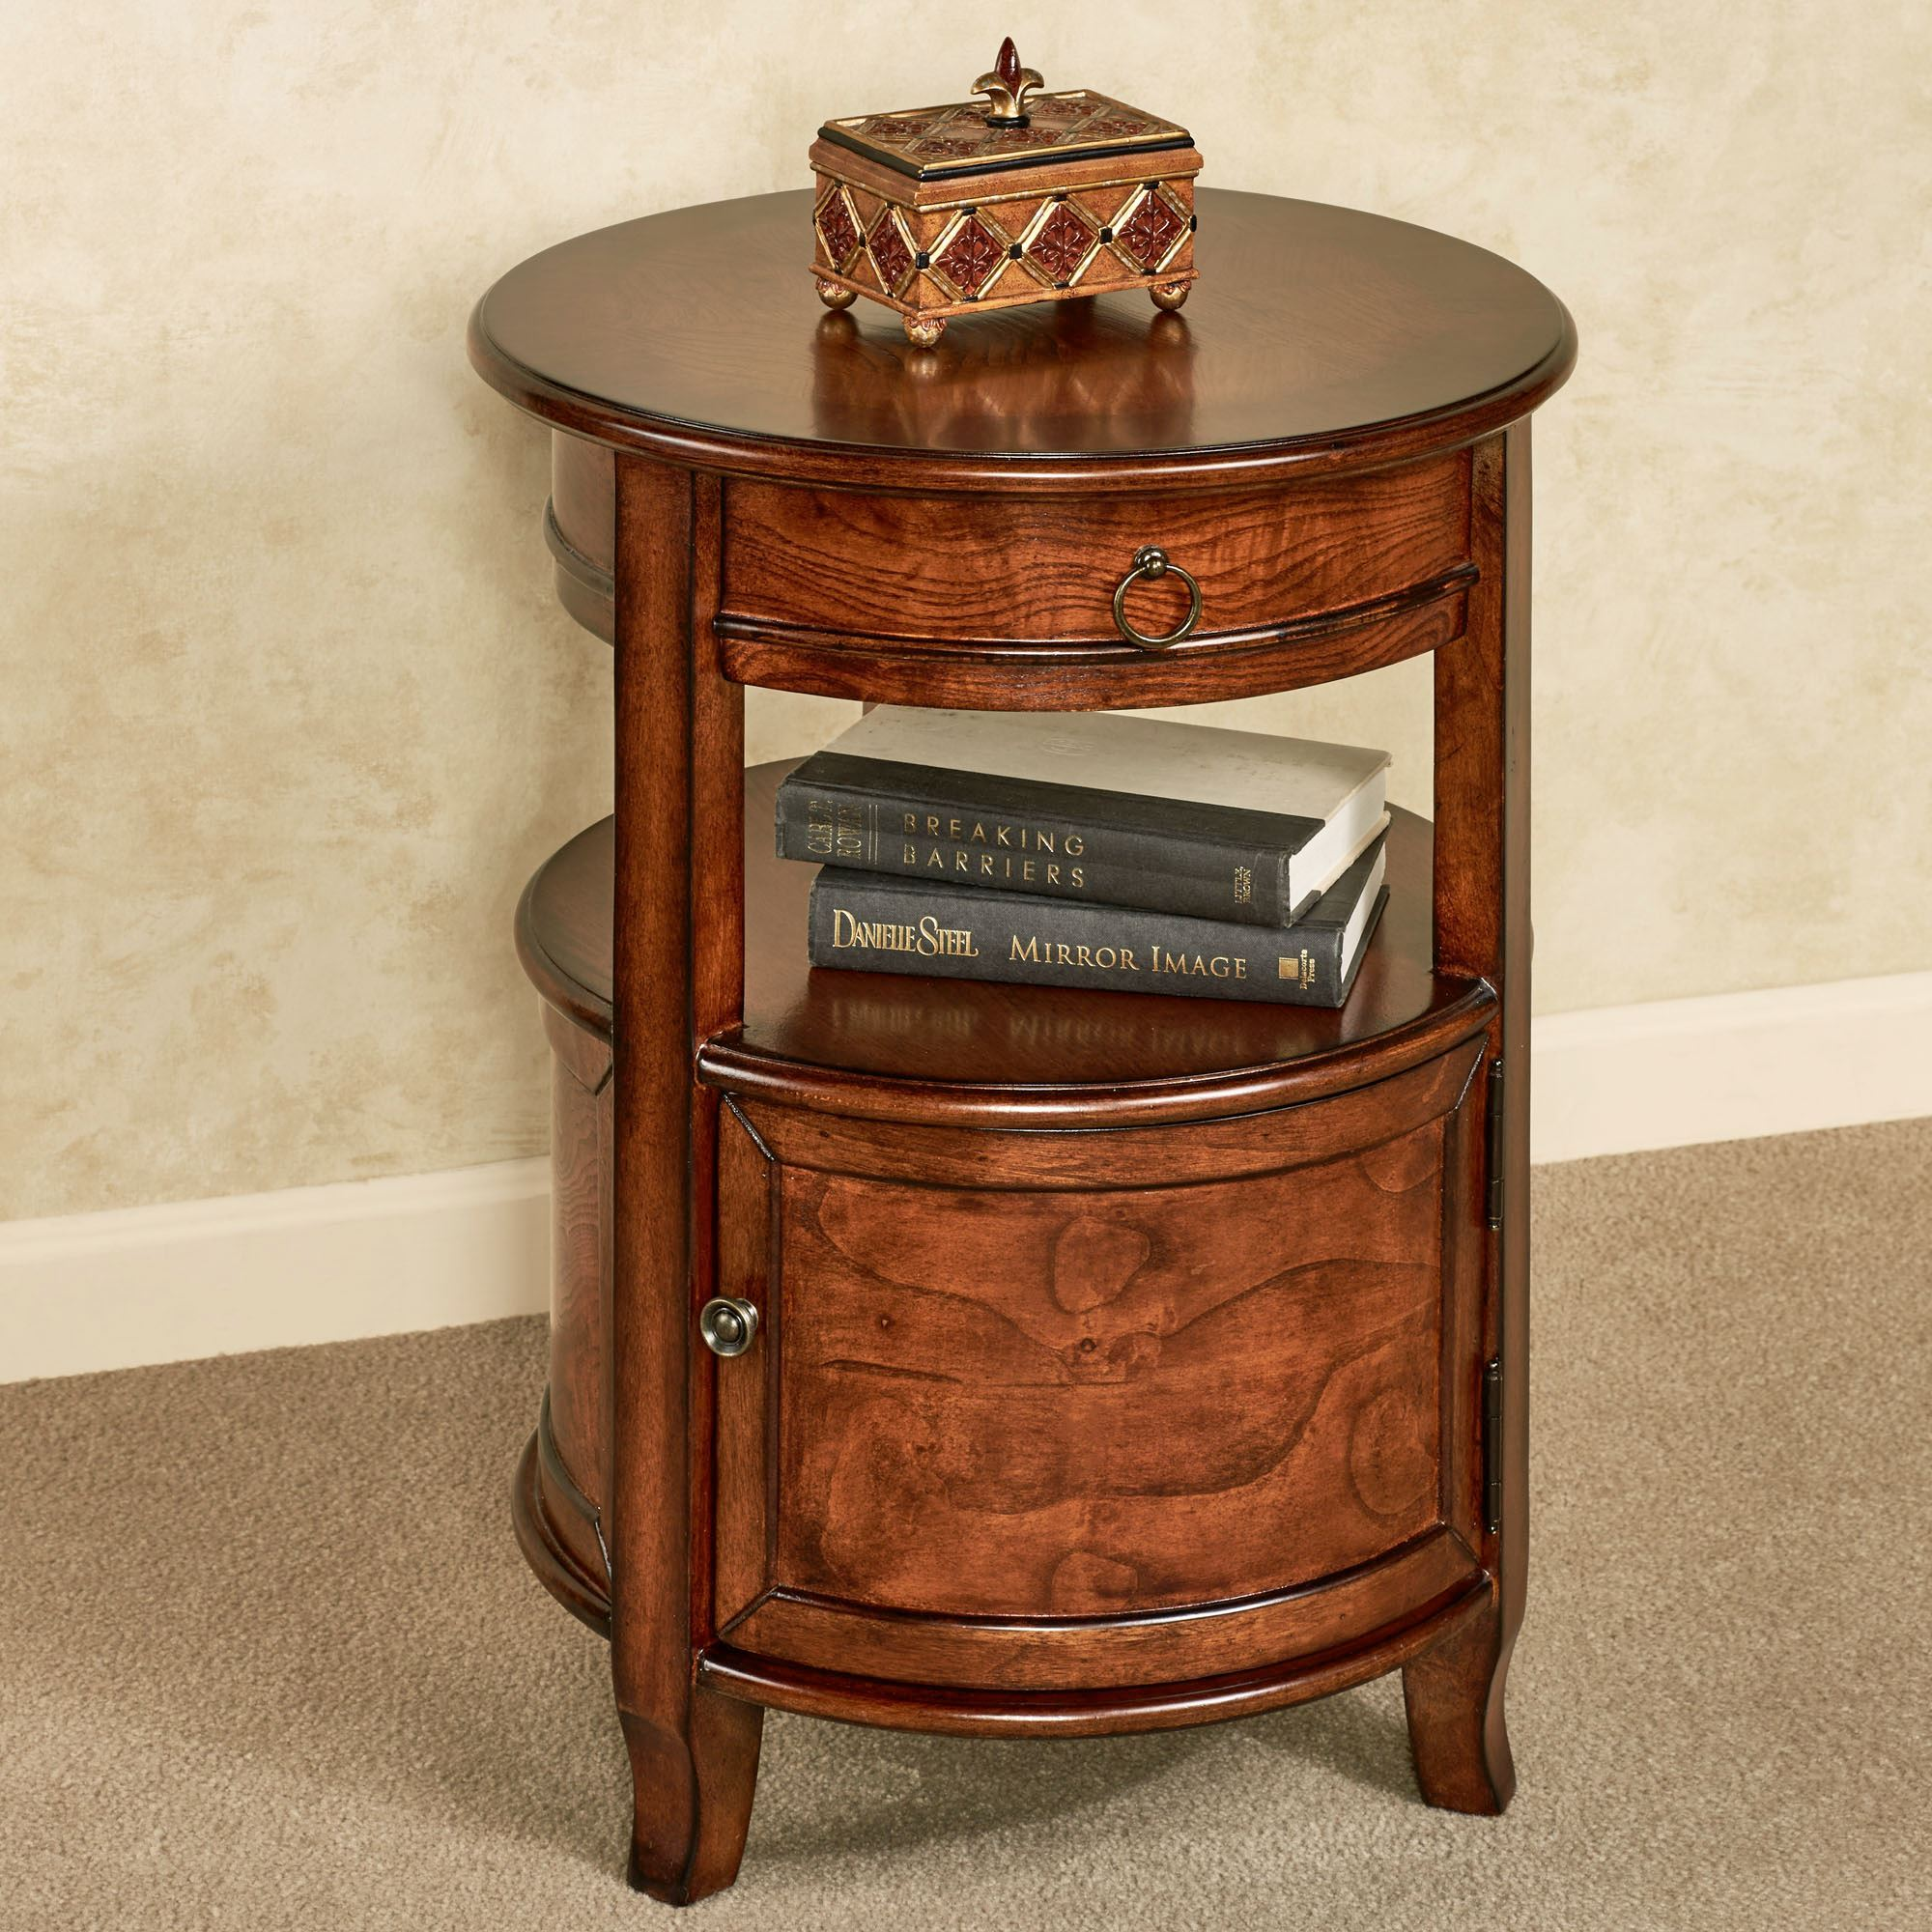 attic heirlooms the outrageous awesome small accent end tables furniture side table round with shelf corner entry black metal circle decorative bedside dark brown rustic coffee